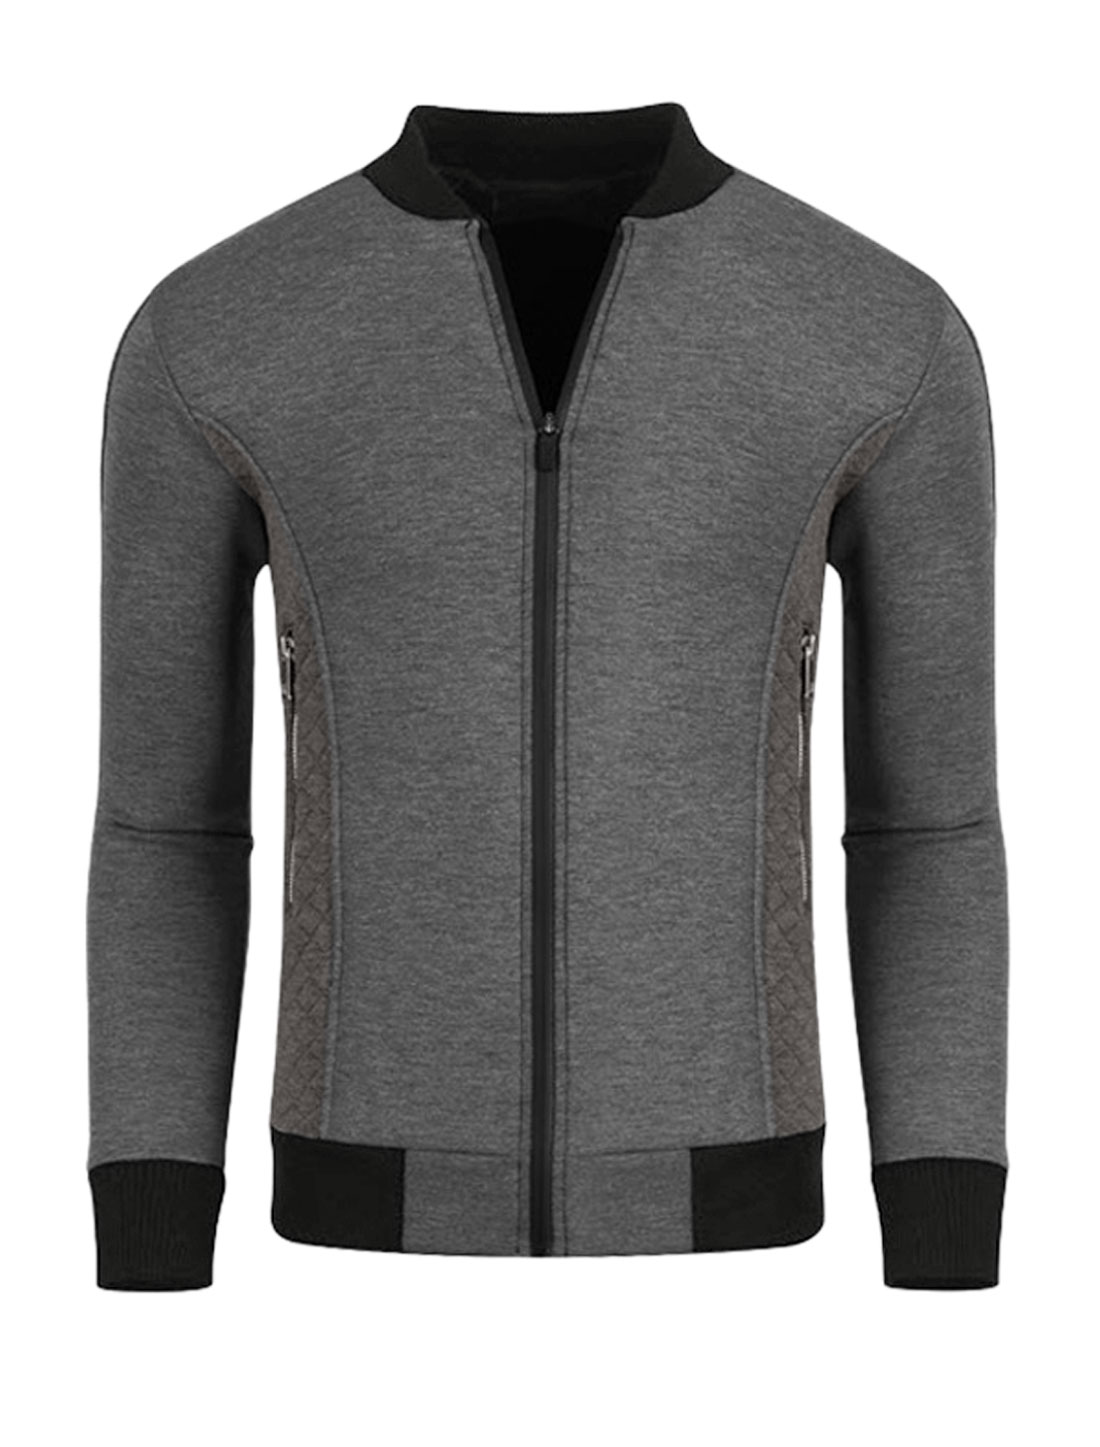 Men Zippered Pockets Quilted Panel Slim Fit Jacket Gray M